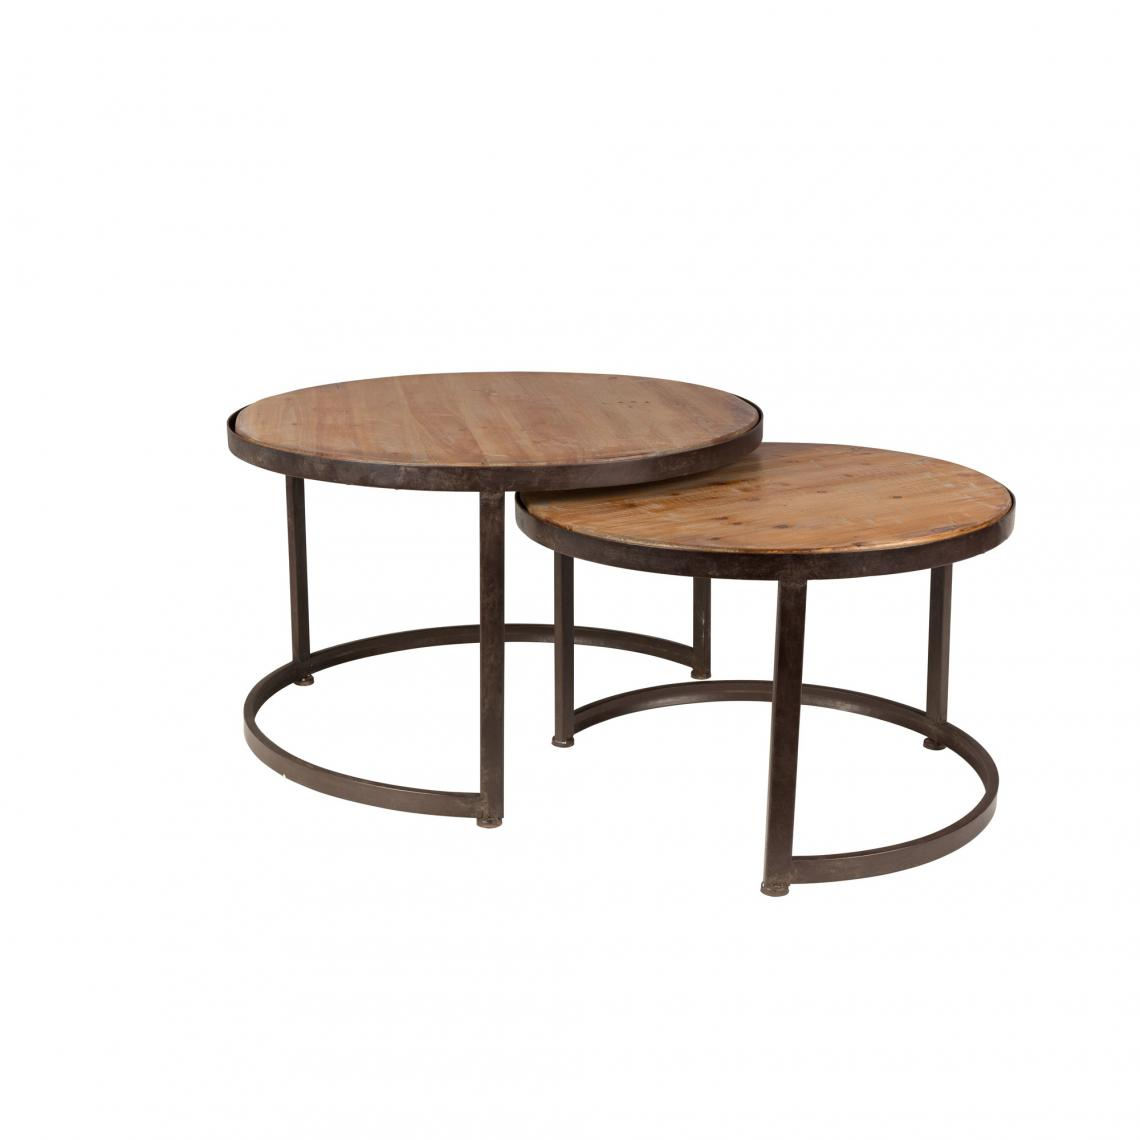 Set de 2 tables basses gigogne rondes en bois et m tal jack 3 suisses - Table de salon gigogne ...